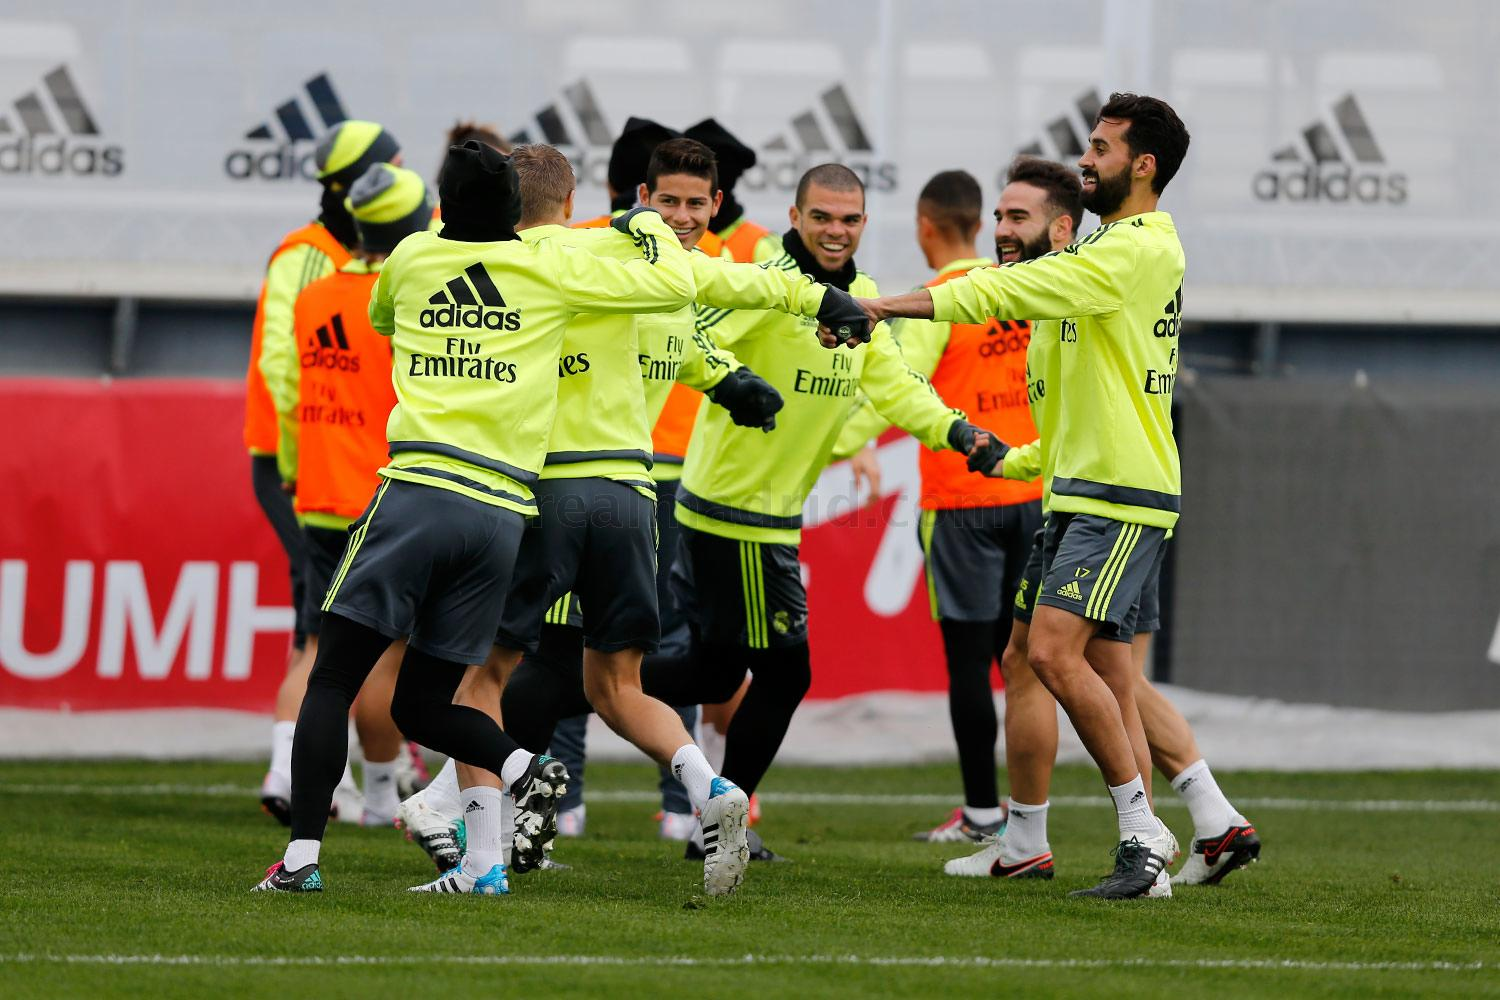 Real Madrid - Entrenamiento del Real Madrid - 07-01-2016